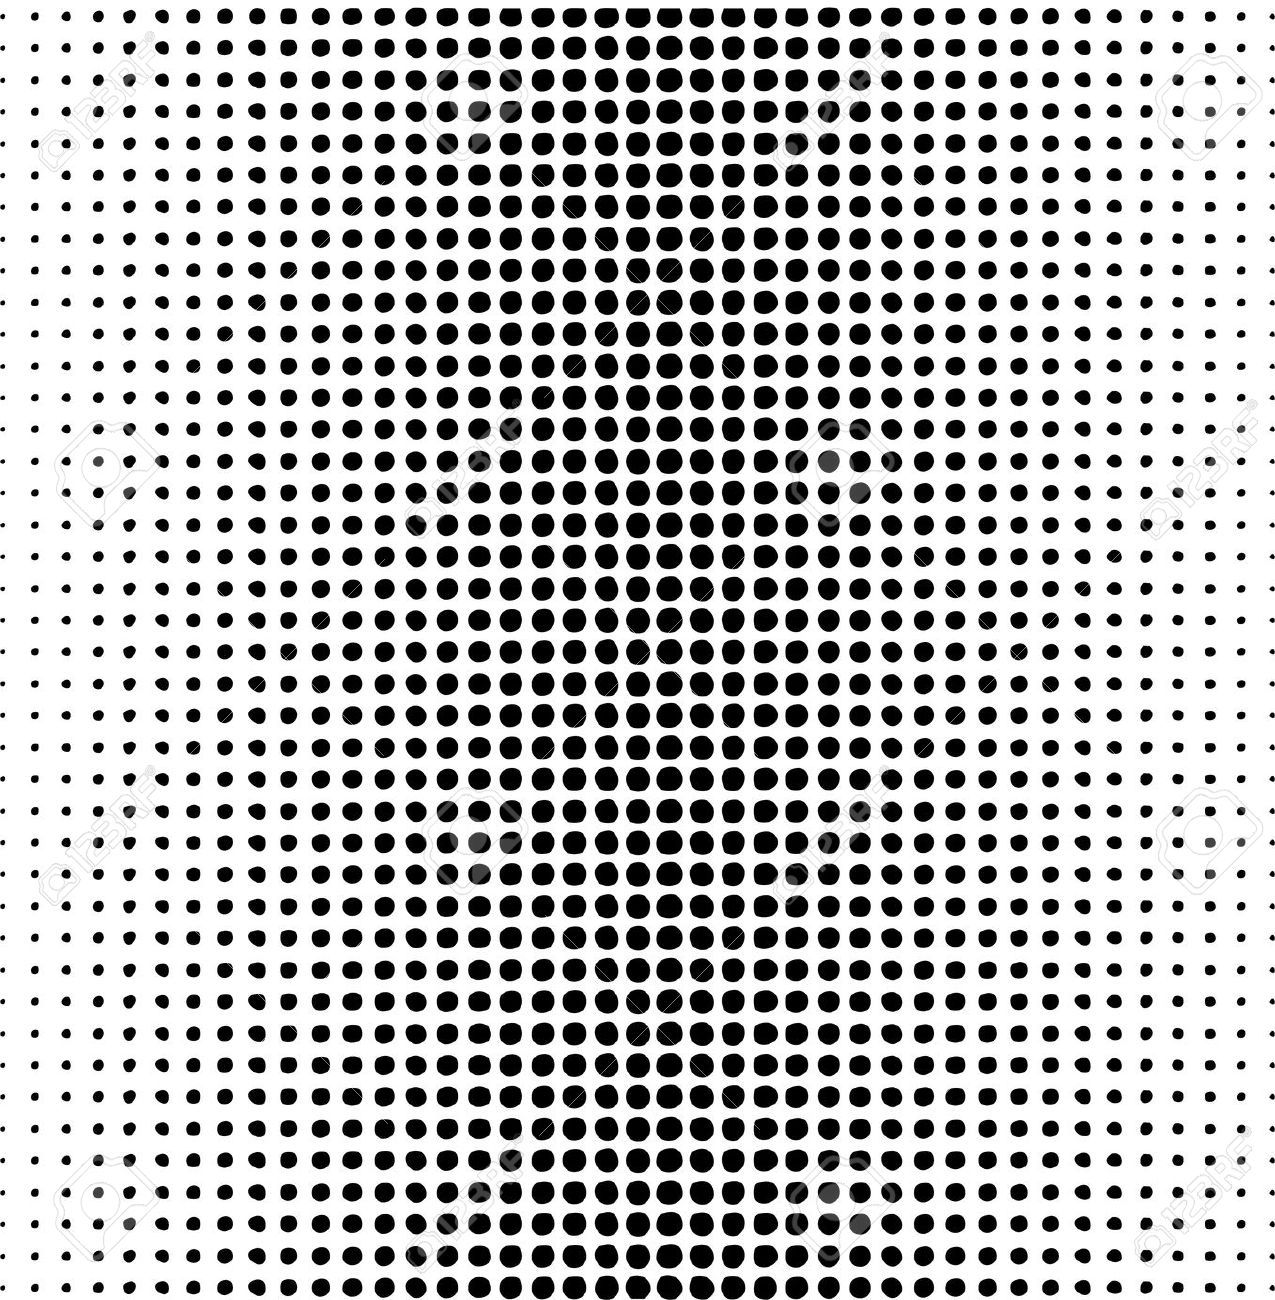 Dot pattern clipart clipart free stock Stock Vector   design inspiration in 2019   Halftone pattern, Vector ... clipart free stock